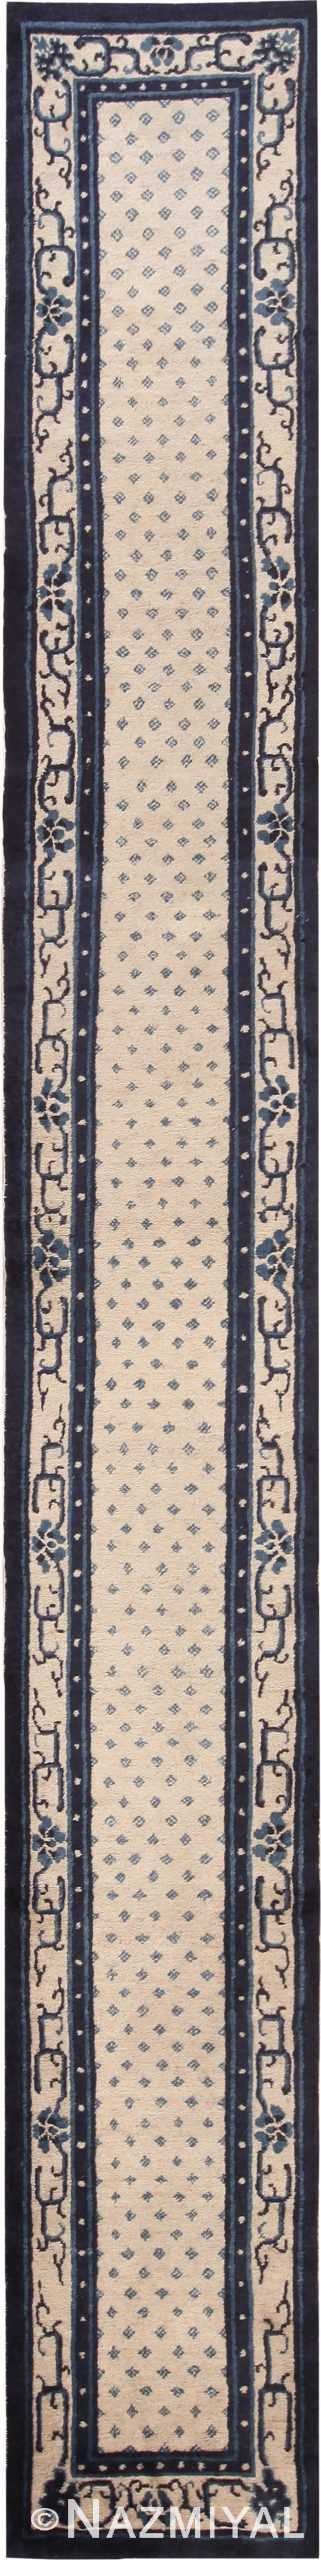 Picture of a rare and beautiful Antique Ivory Blue Peking Chinese Runner Rug #70060 from Nazmiyal Antique Rugs in NYC